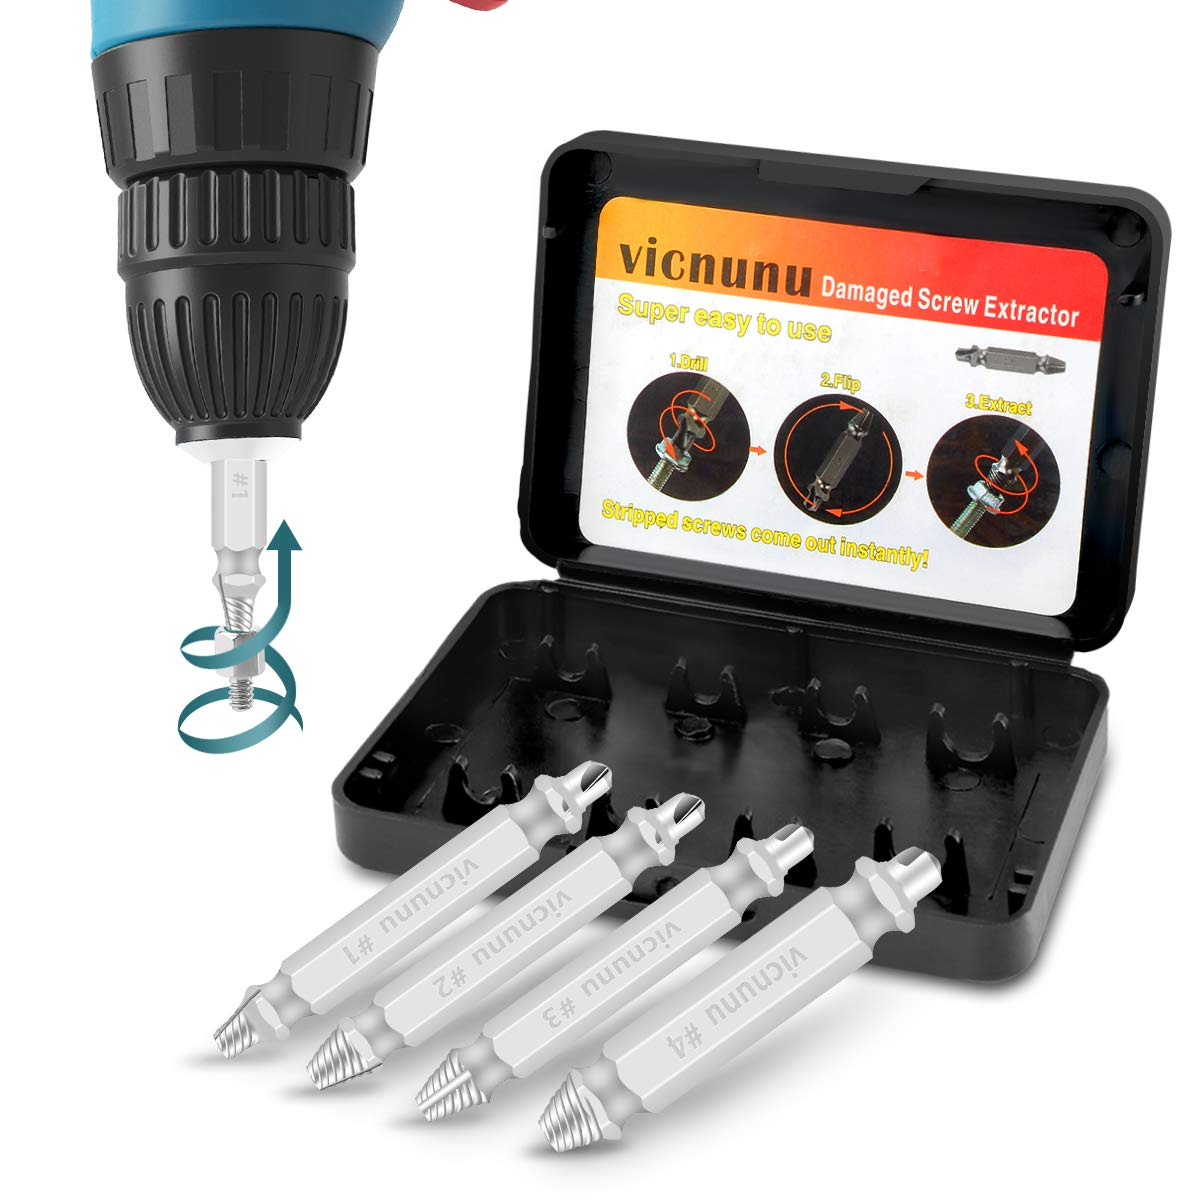 Damaged Screw Extractor Remove Set by Vicnunu, Stripped Screws and Broken Bolts Easy-Out Removers, Made From H.S.S. 4341#, 63-65HRC Hardness, 4-Piece Stripped Screw Extractor Kit